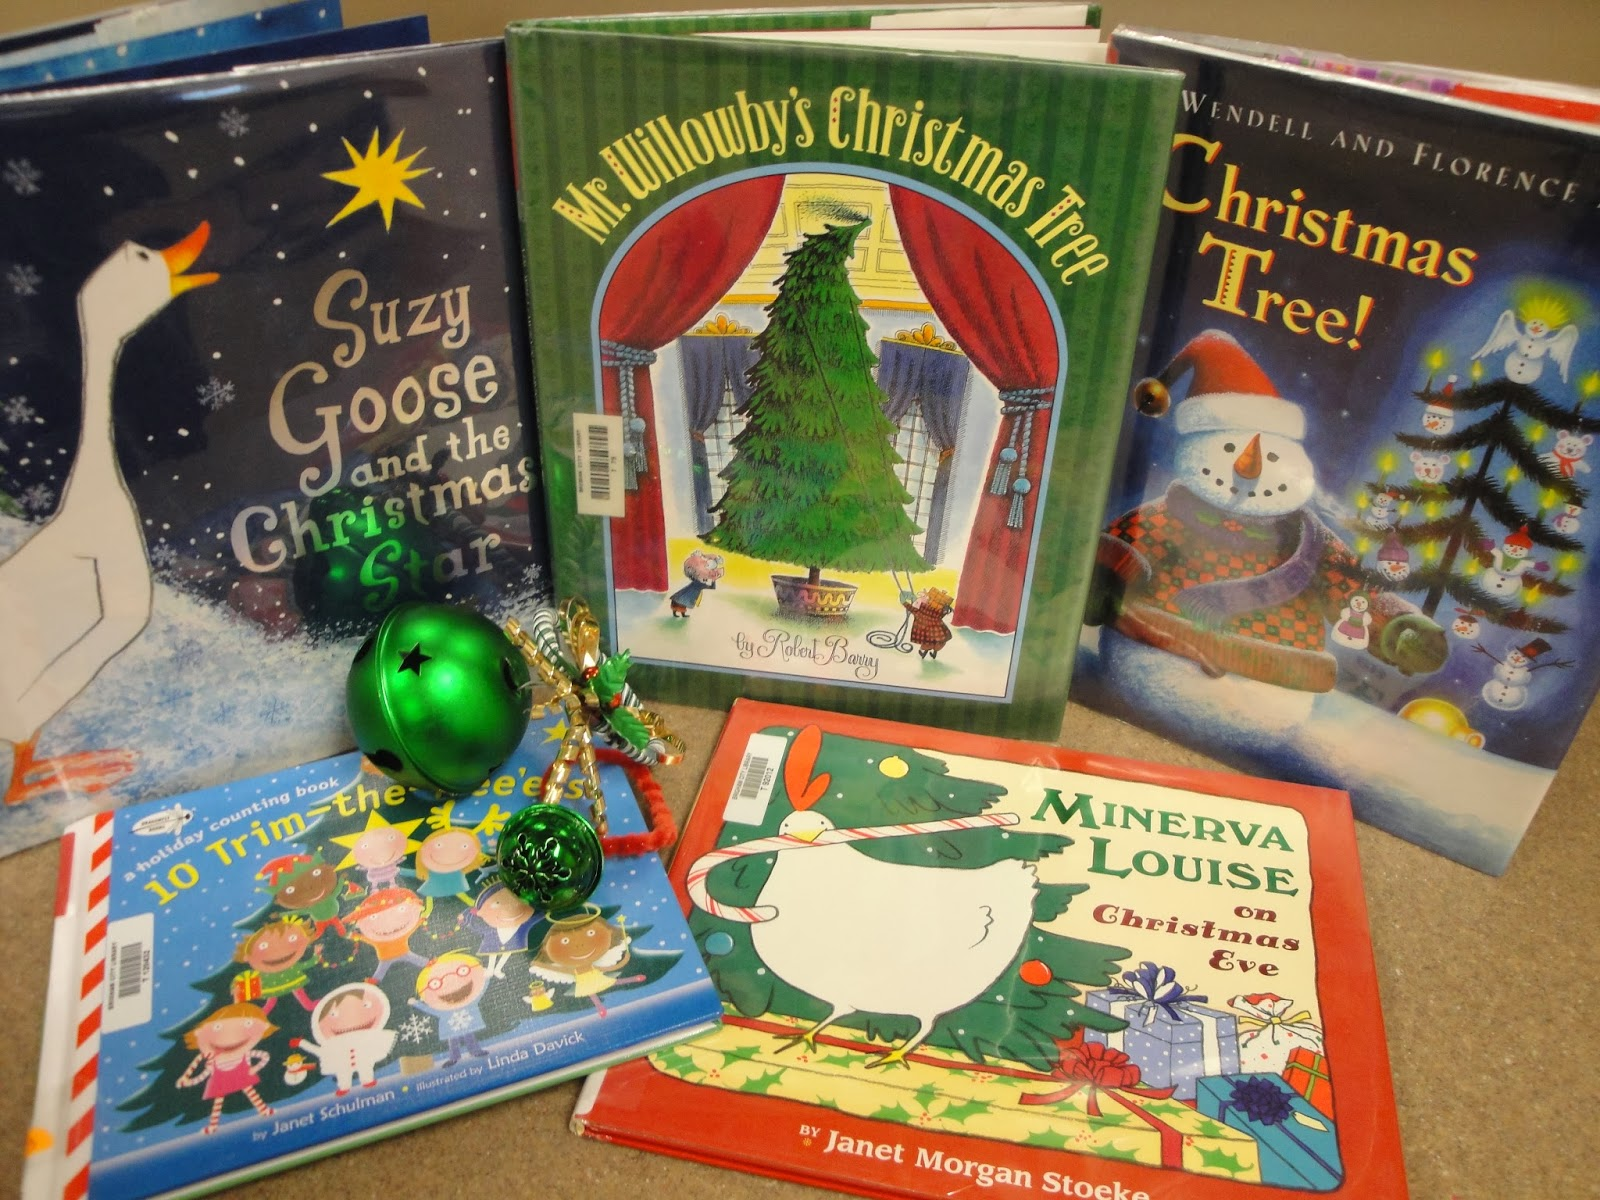 This Week We Held Our Final Story Time Classes Before Christmas And So I Finally Had To Do Christmas Stories I Decided To Focus On Christmas Trees